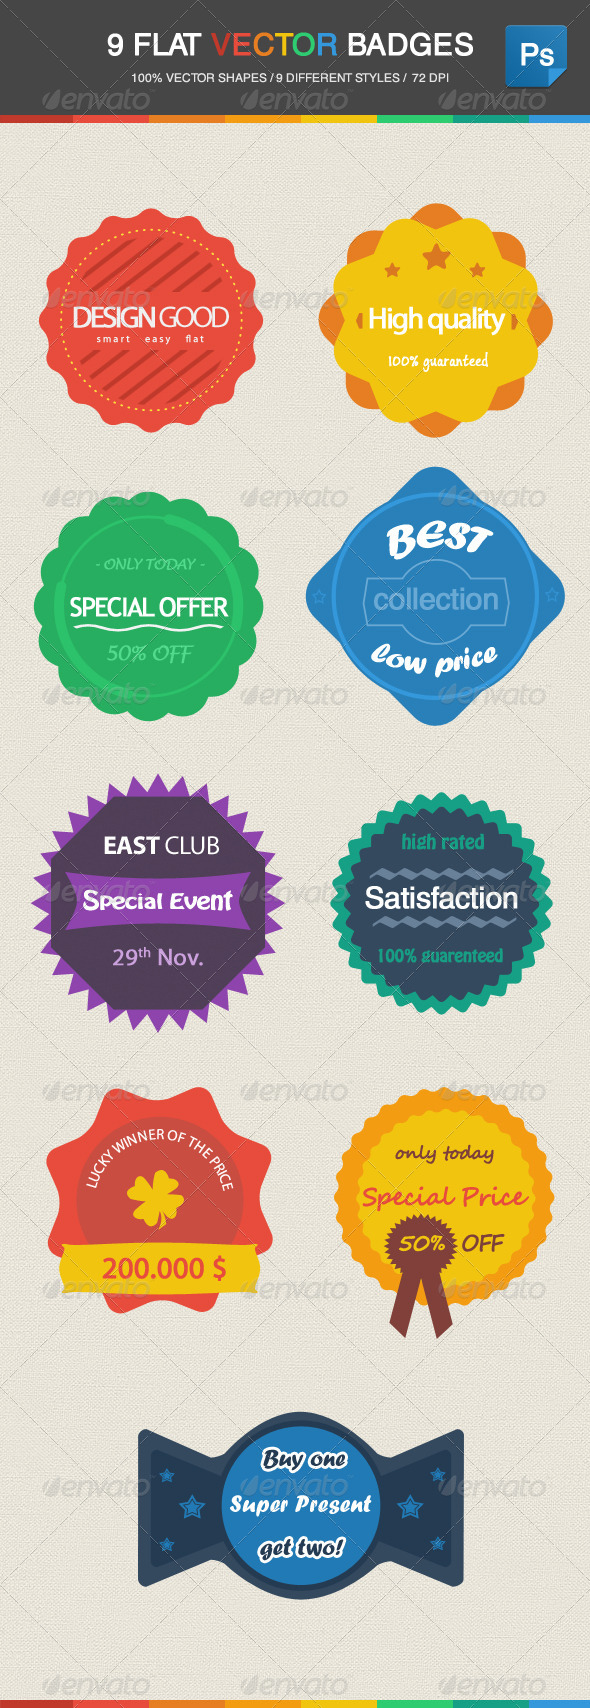 GraphicRiver 9 Flat Vector Badges 4758503